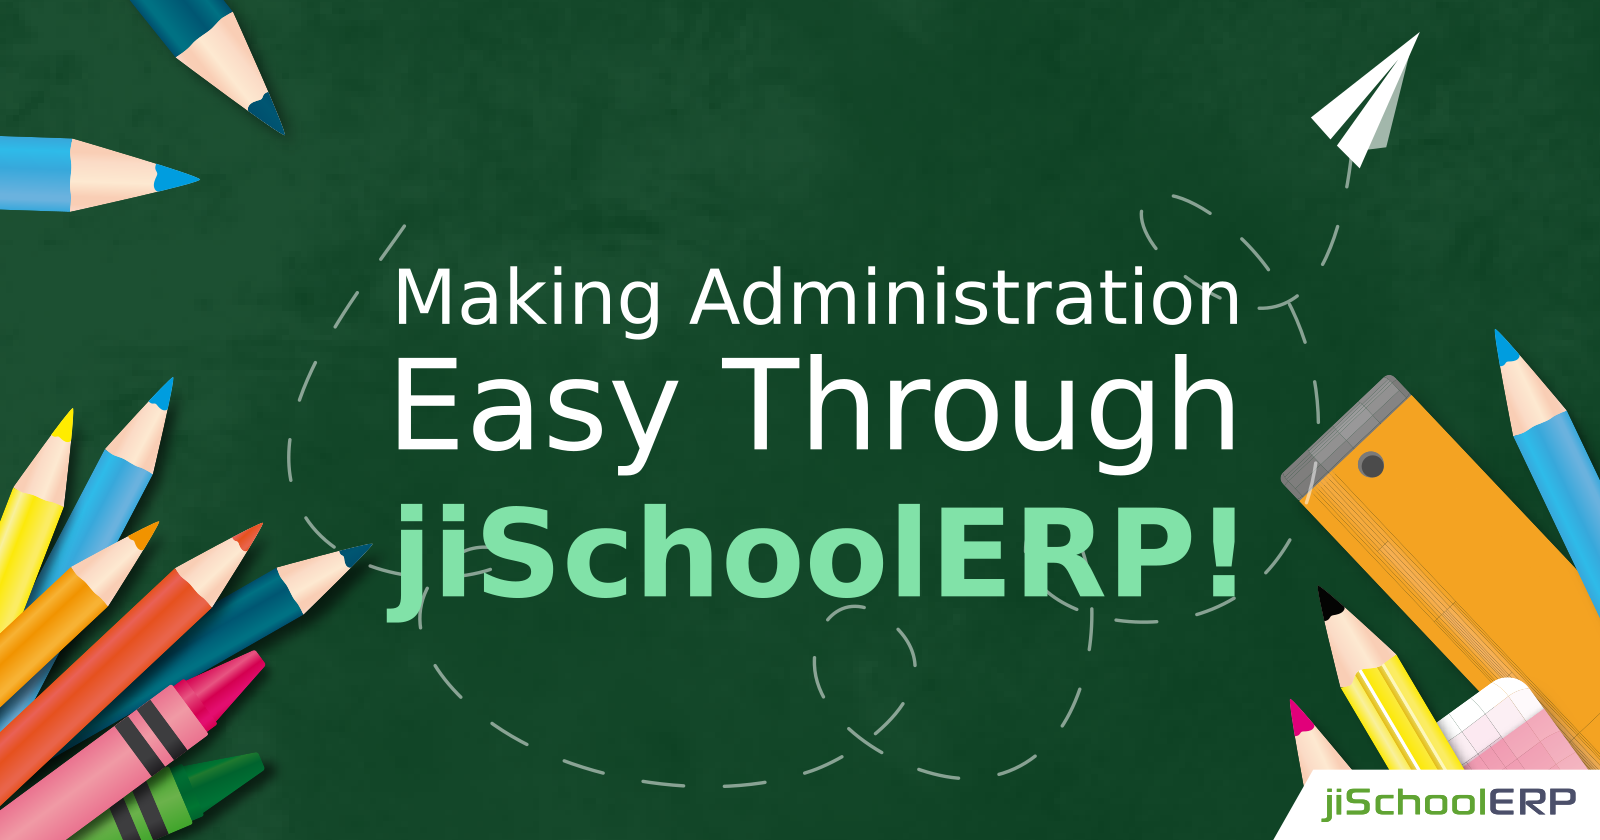 Making School Administration Easy with jiSchoolERP!